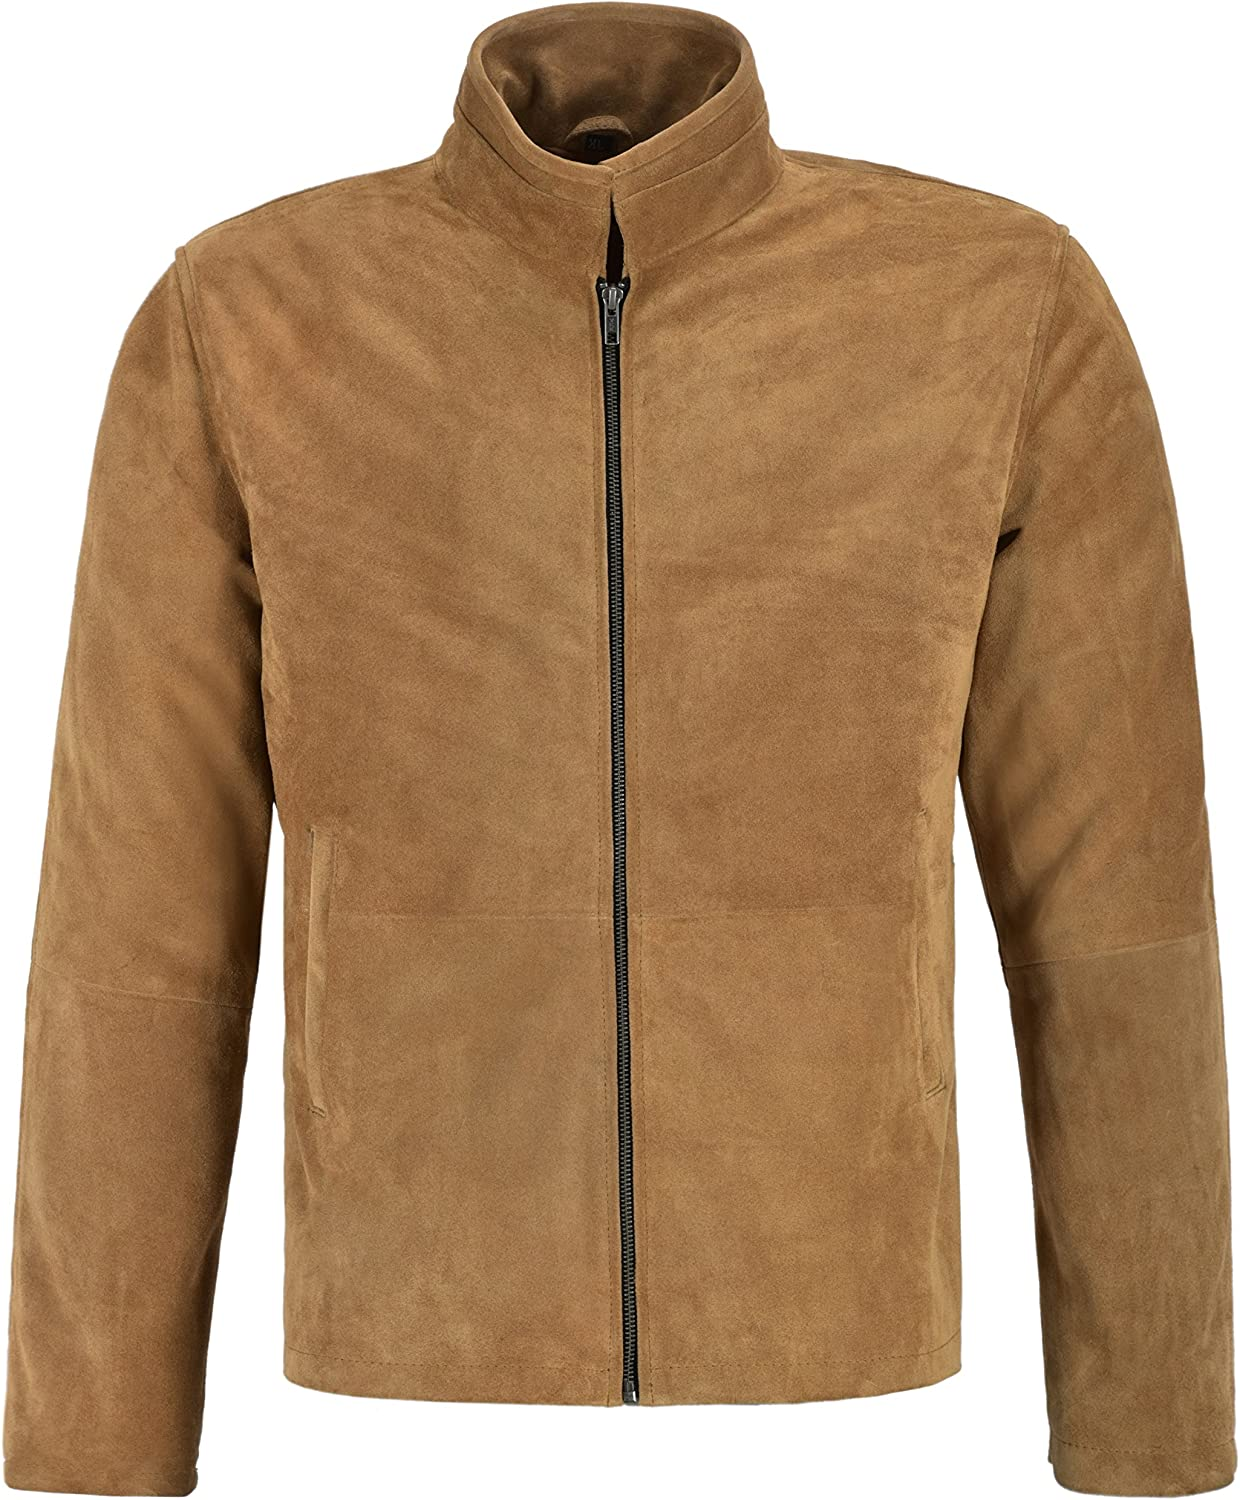 Men/'s James Bond Brown Suede Daniel Craig Spectre Morocco Blouson Leather Jacket